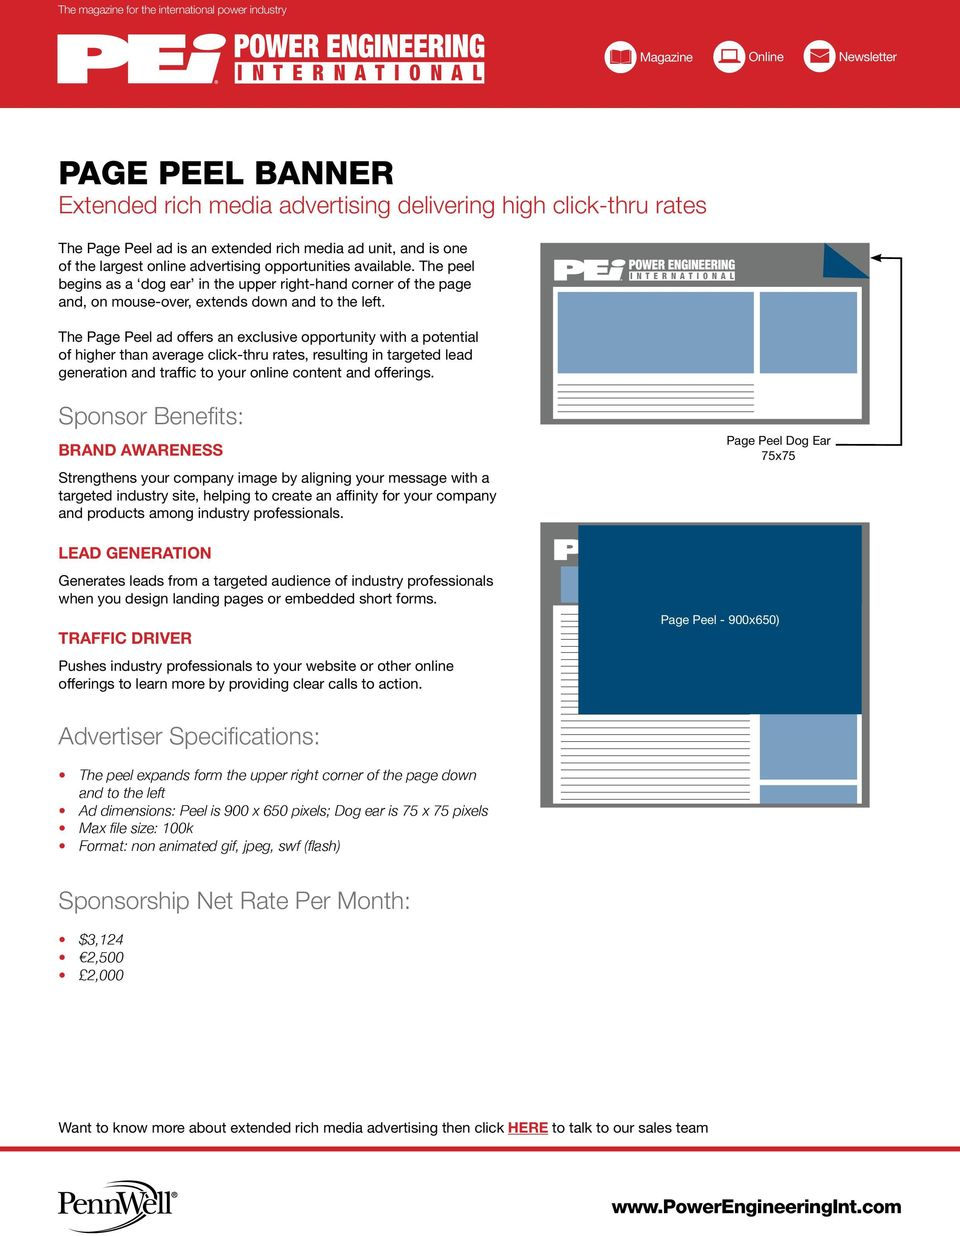 The Page Peel ad offers an exclusive opportunity with a potential of higher than average click-thru rates, resulting in targeted lead generation and traffic to your online content and offerings.